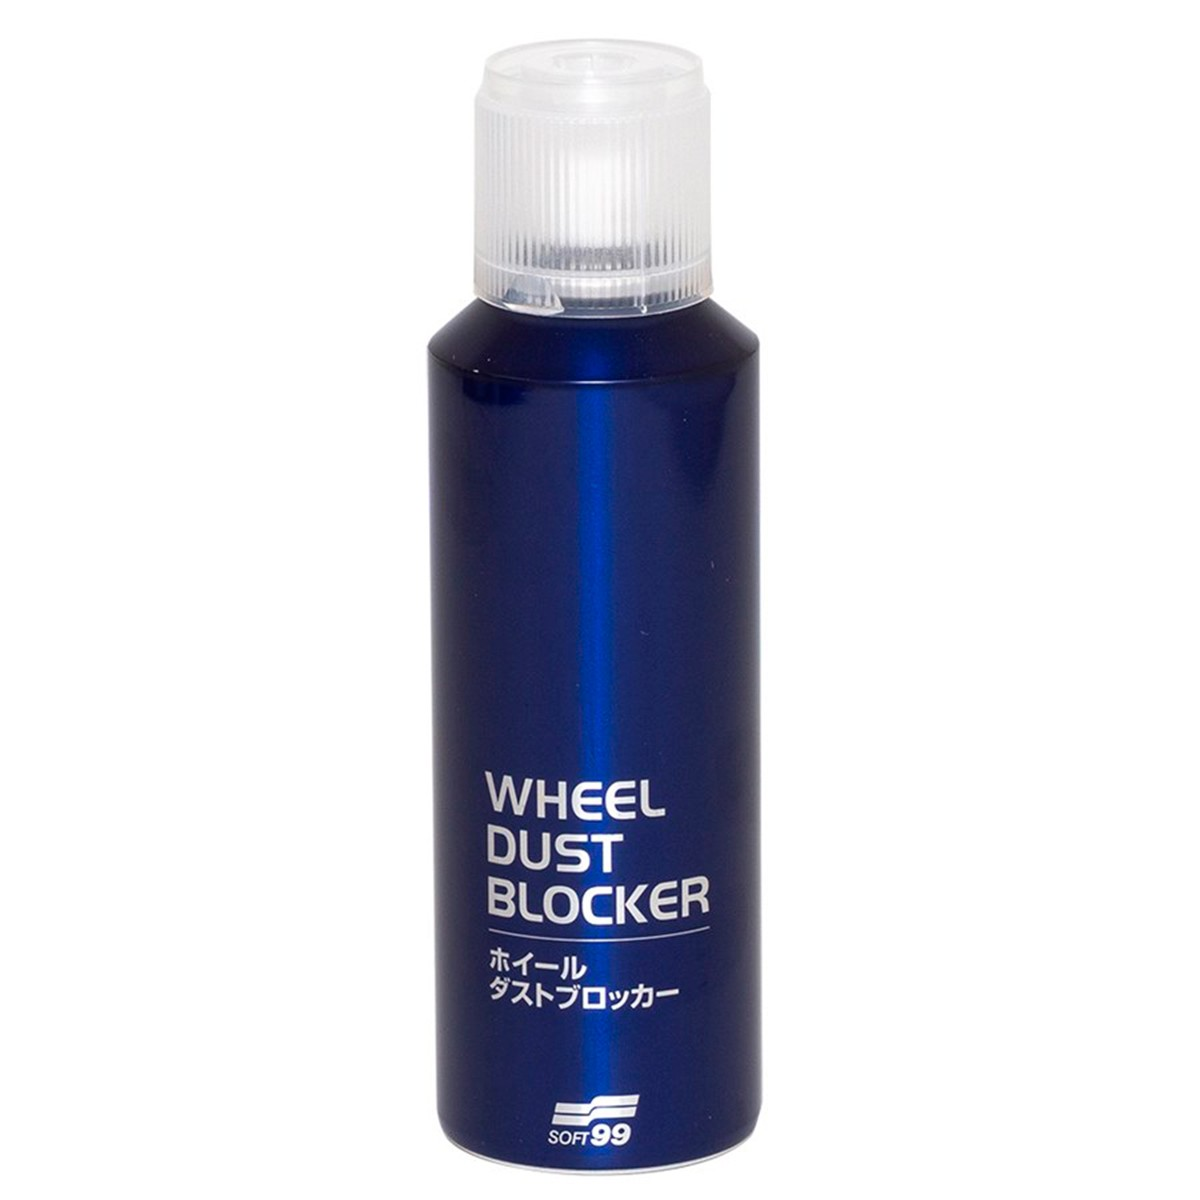 Wheel Dust Blocker Impermeabilizante Para Rodas 200ml - Soft99